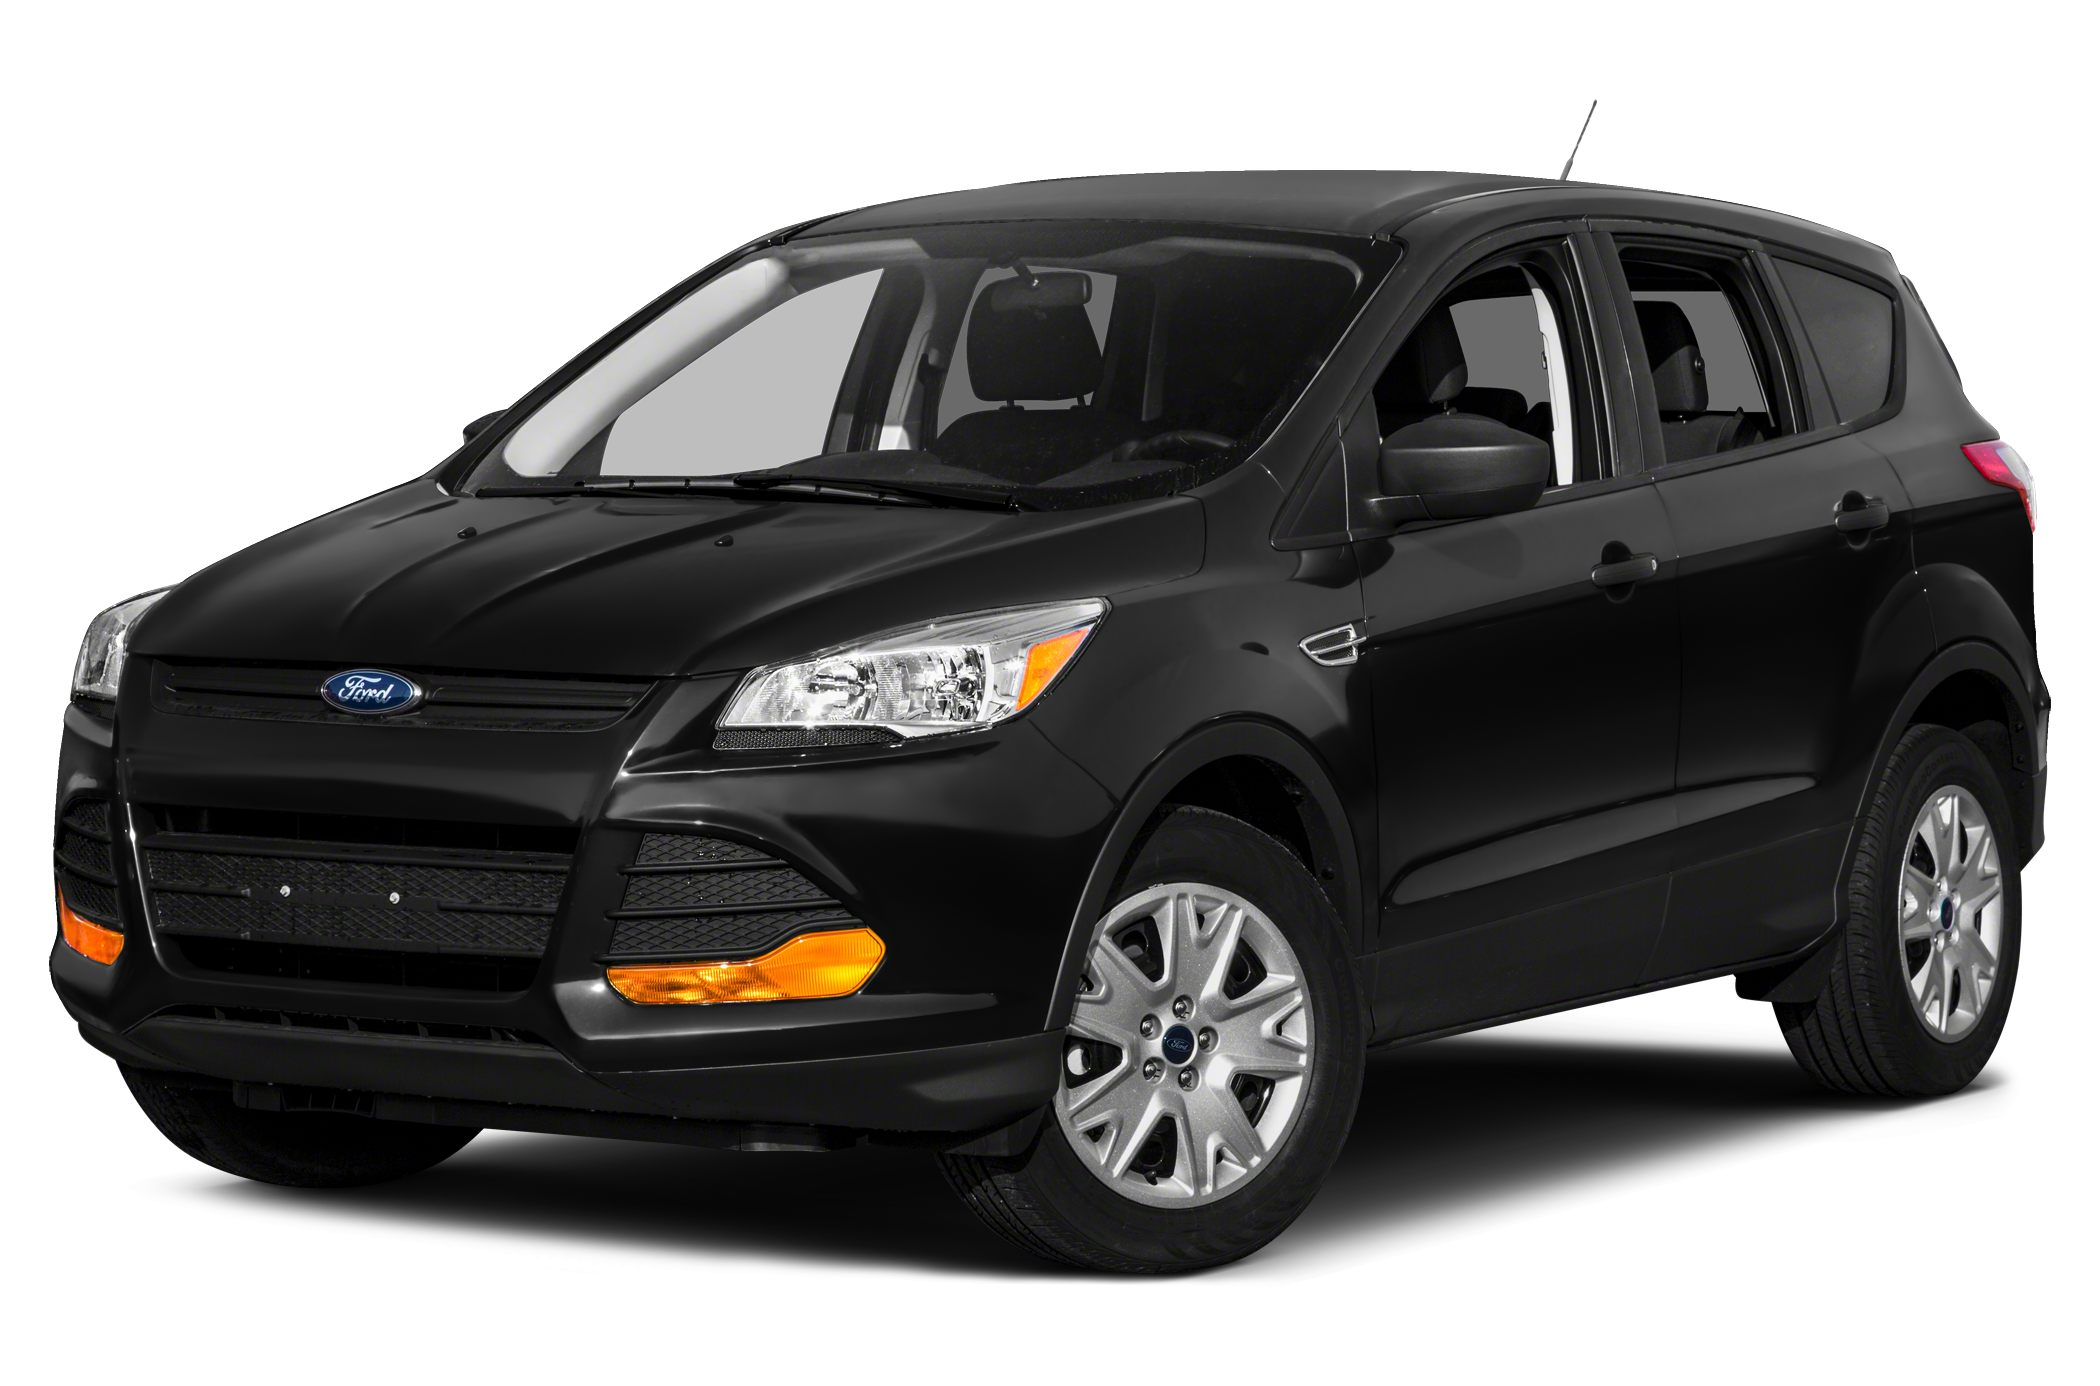 See 2014 Ford Escape Color Options Carsdirect